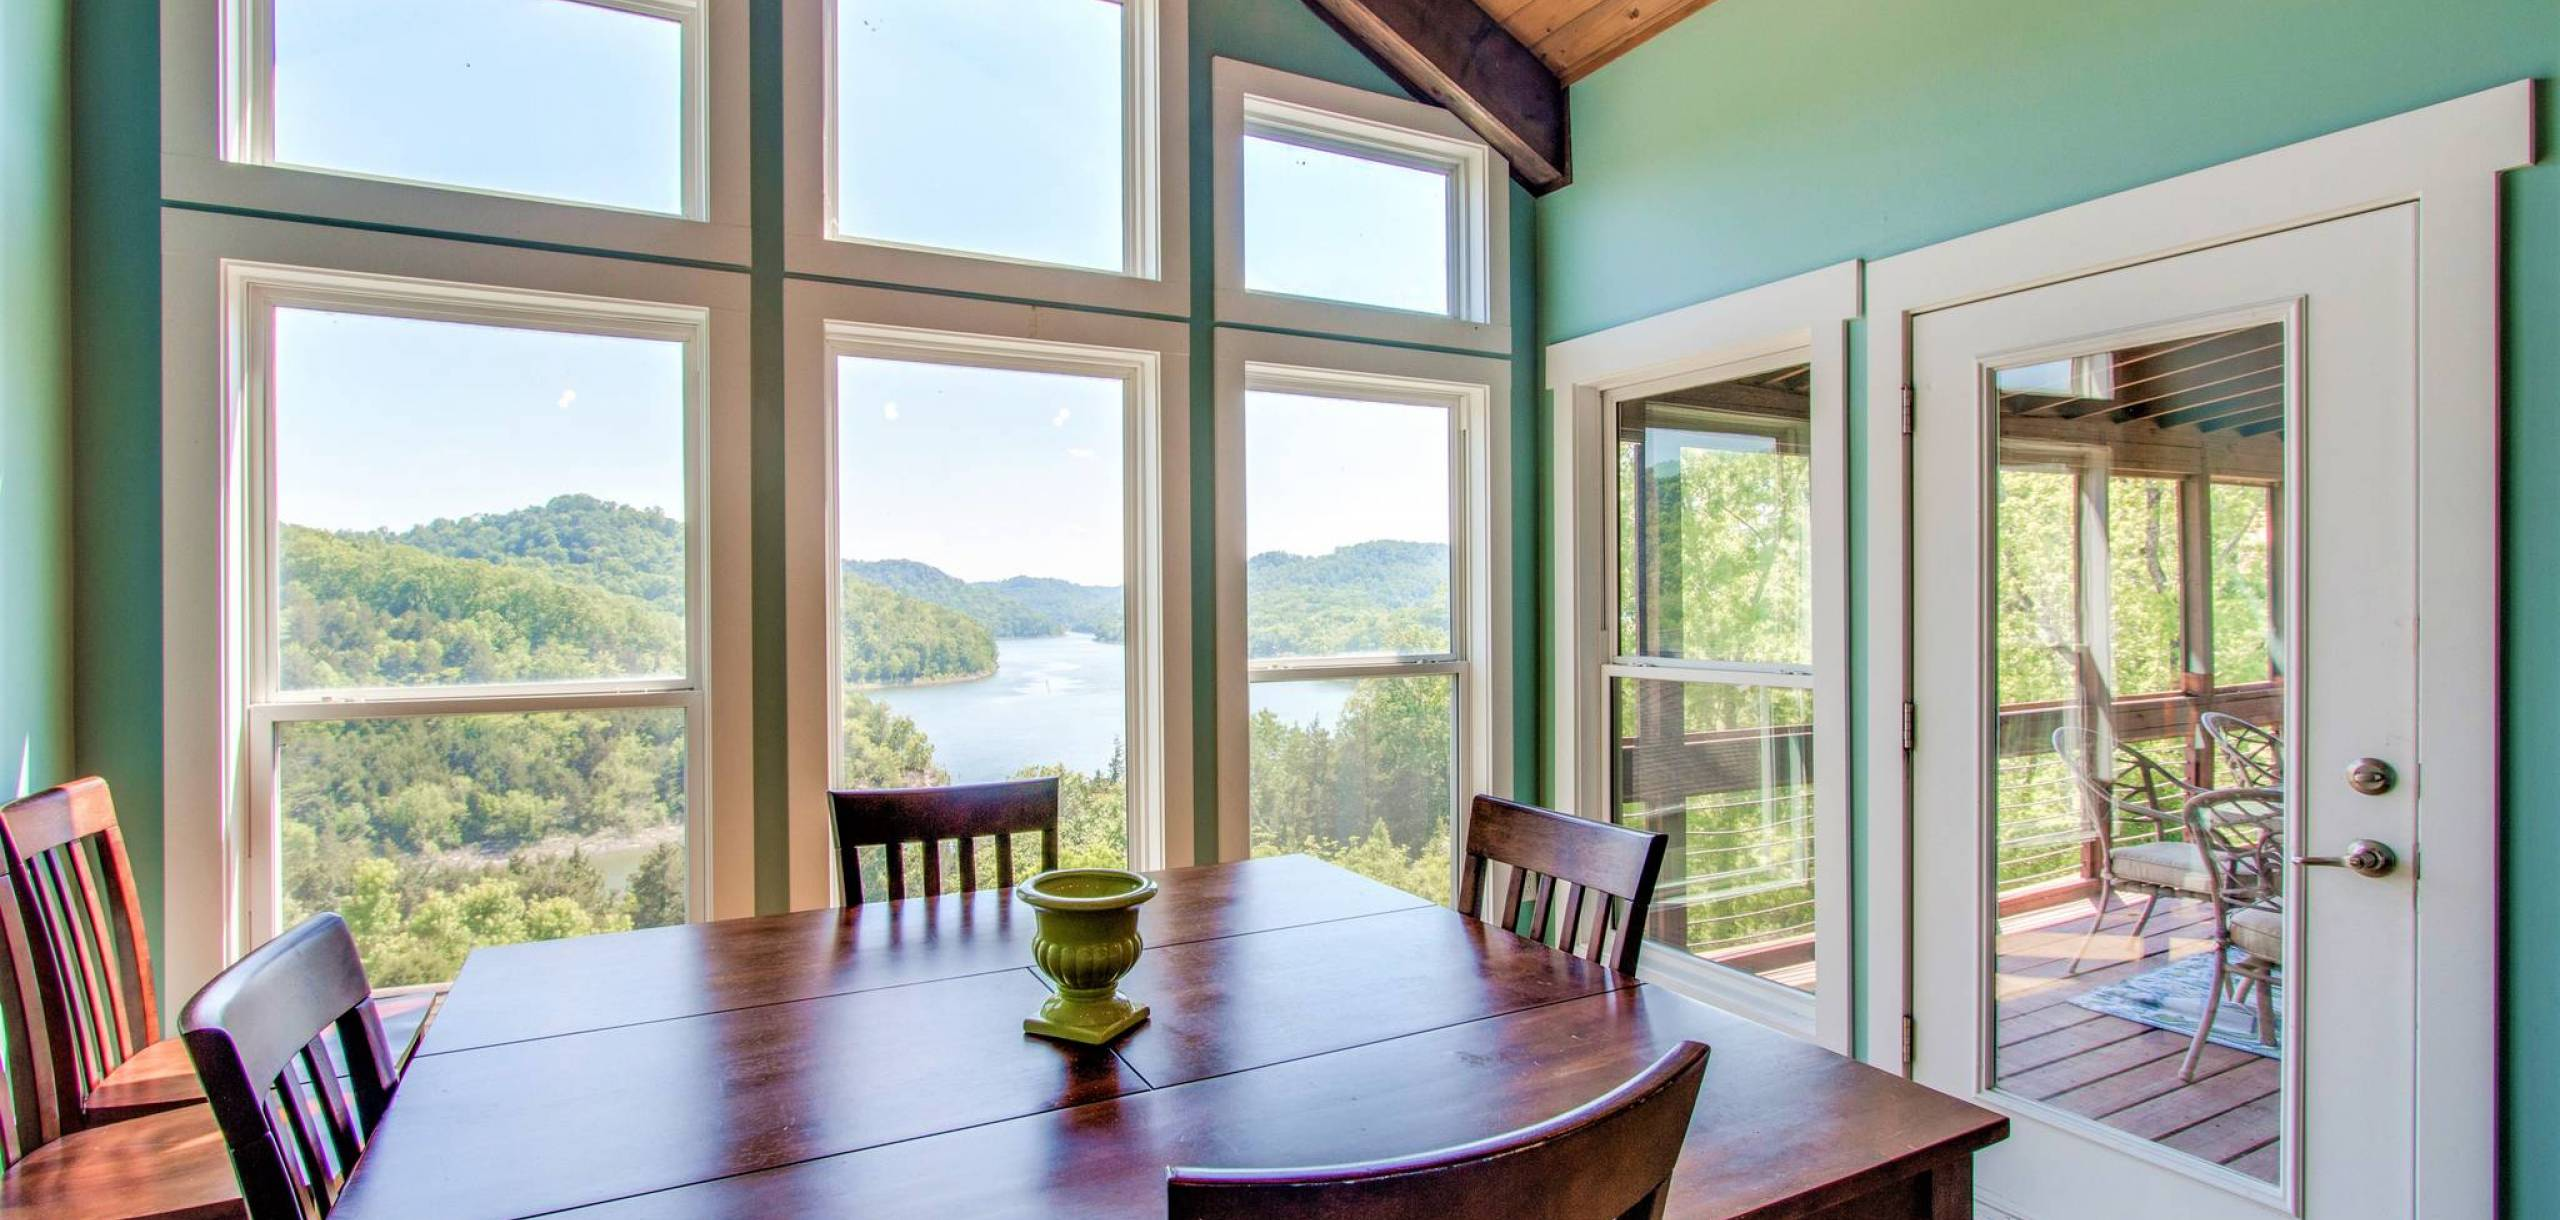 The dining room view of the lake